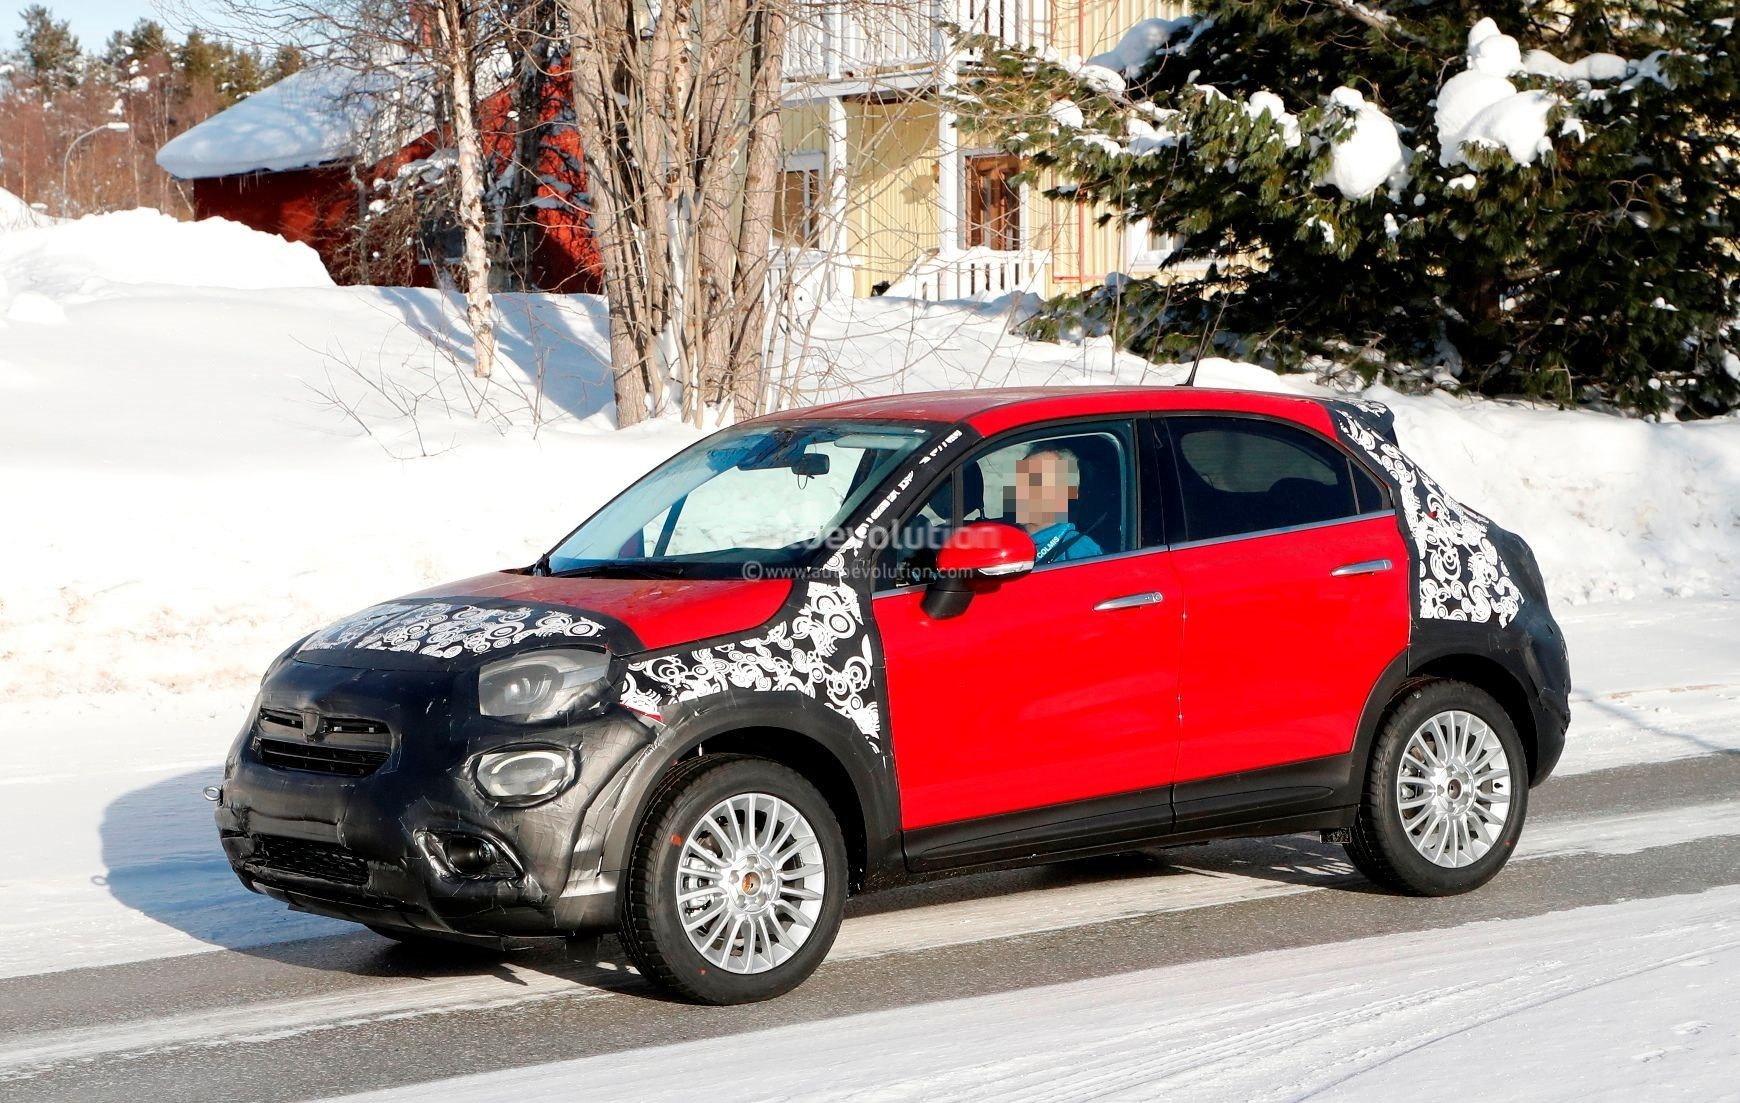 New Jeep Renegade >> 2019 Fiat 500X Facelift Spied Testing In Sweden - autoevolution